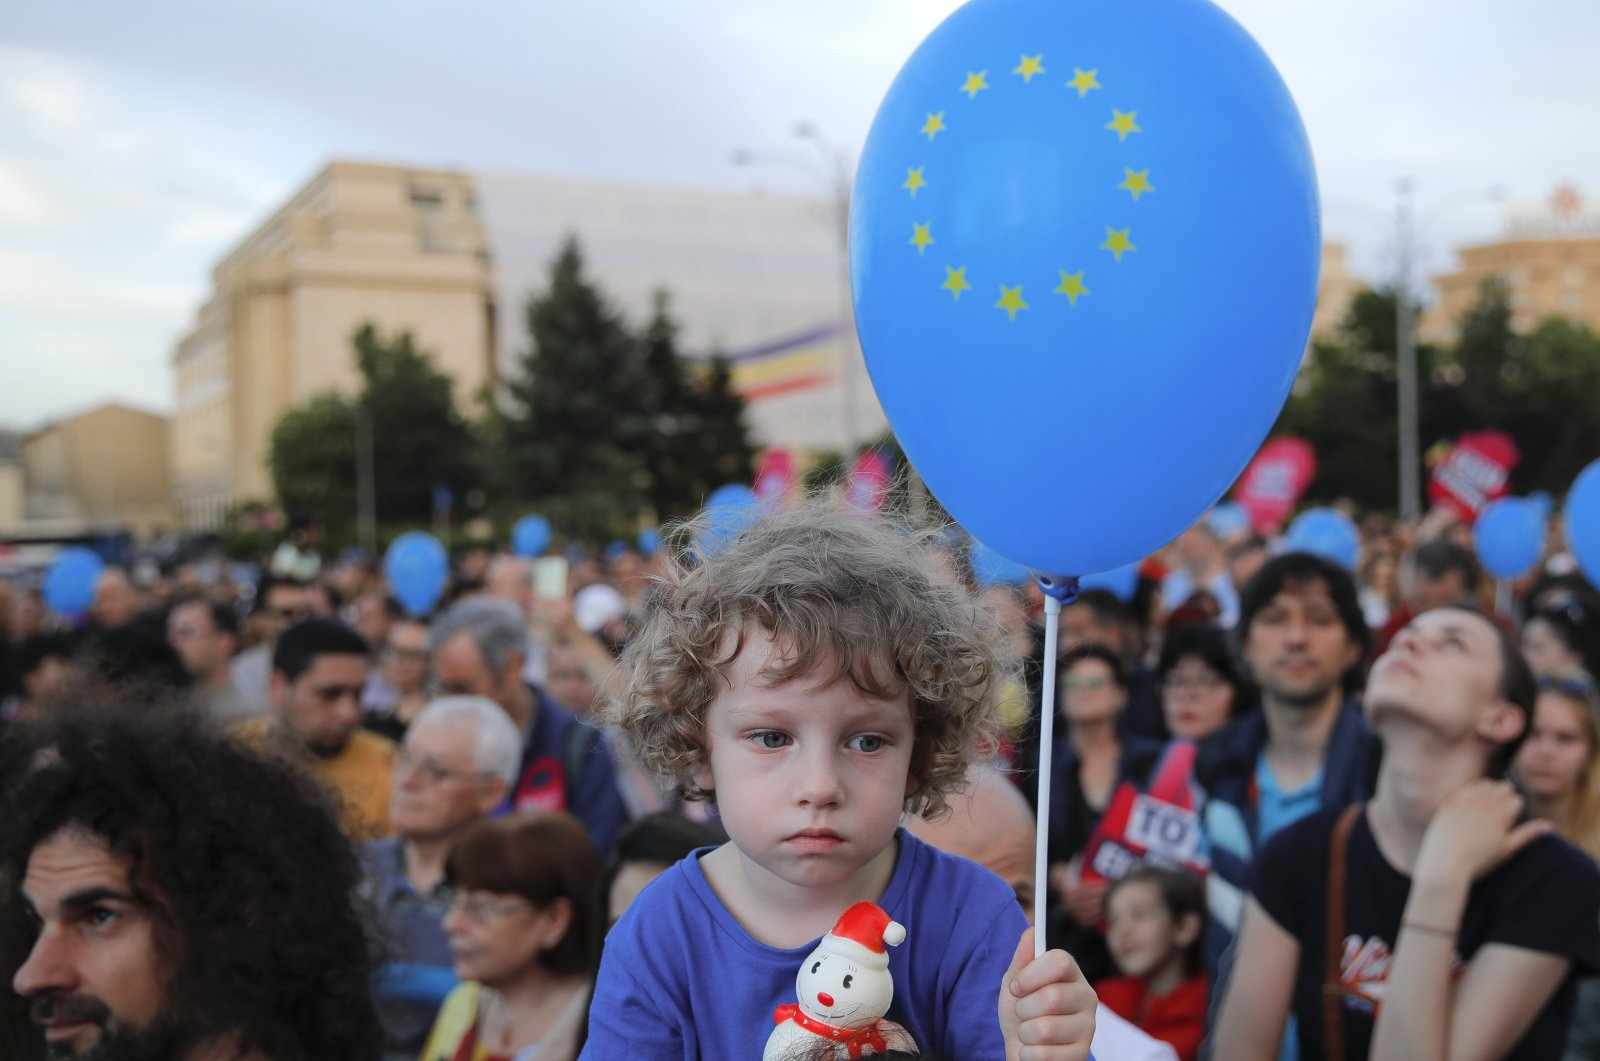 """A child holds a balloon depicting the European Union Flag during a pro-Europe event dubbed """"All for Europe"""" outside the government headquarters in Bucharest, Romania, May 19, 2019. (AP Photo)"""